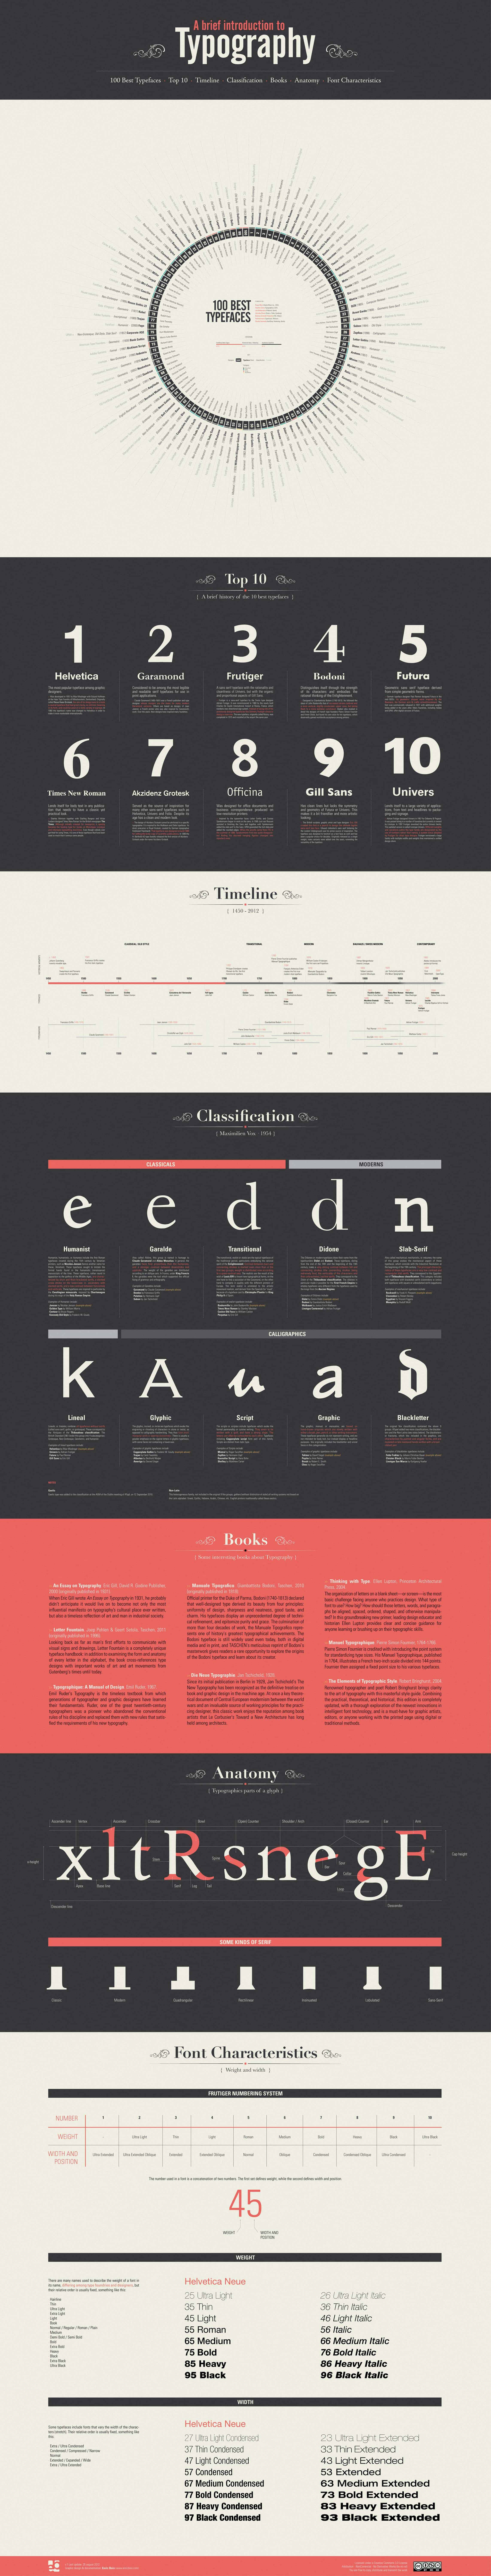 Info-graphic: 100 best typefaces of typography